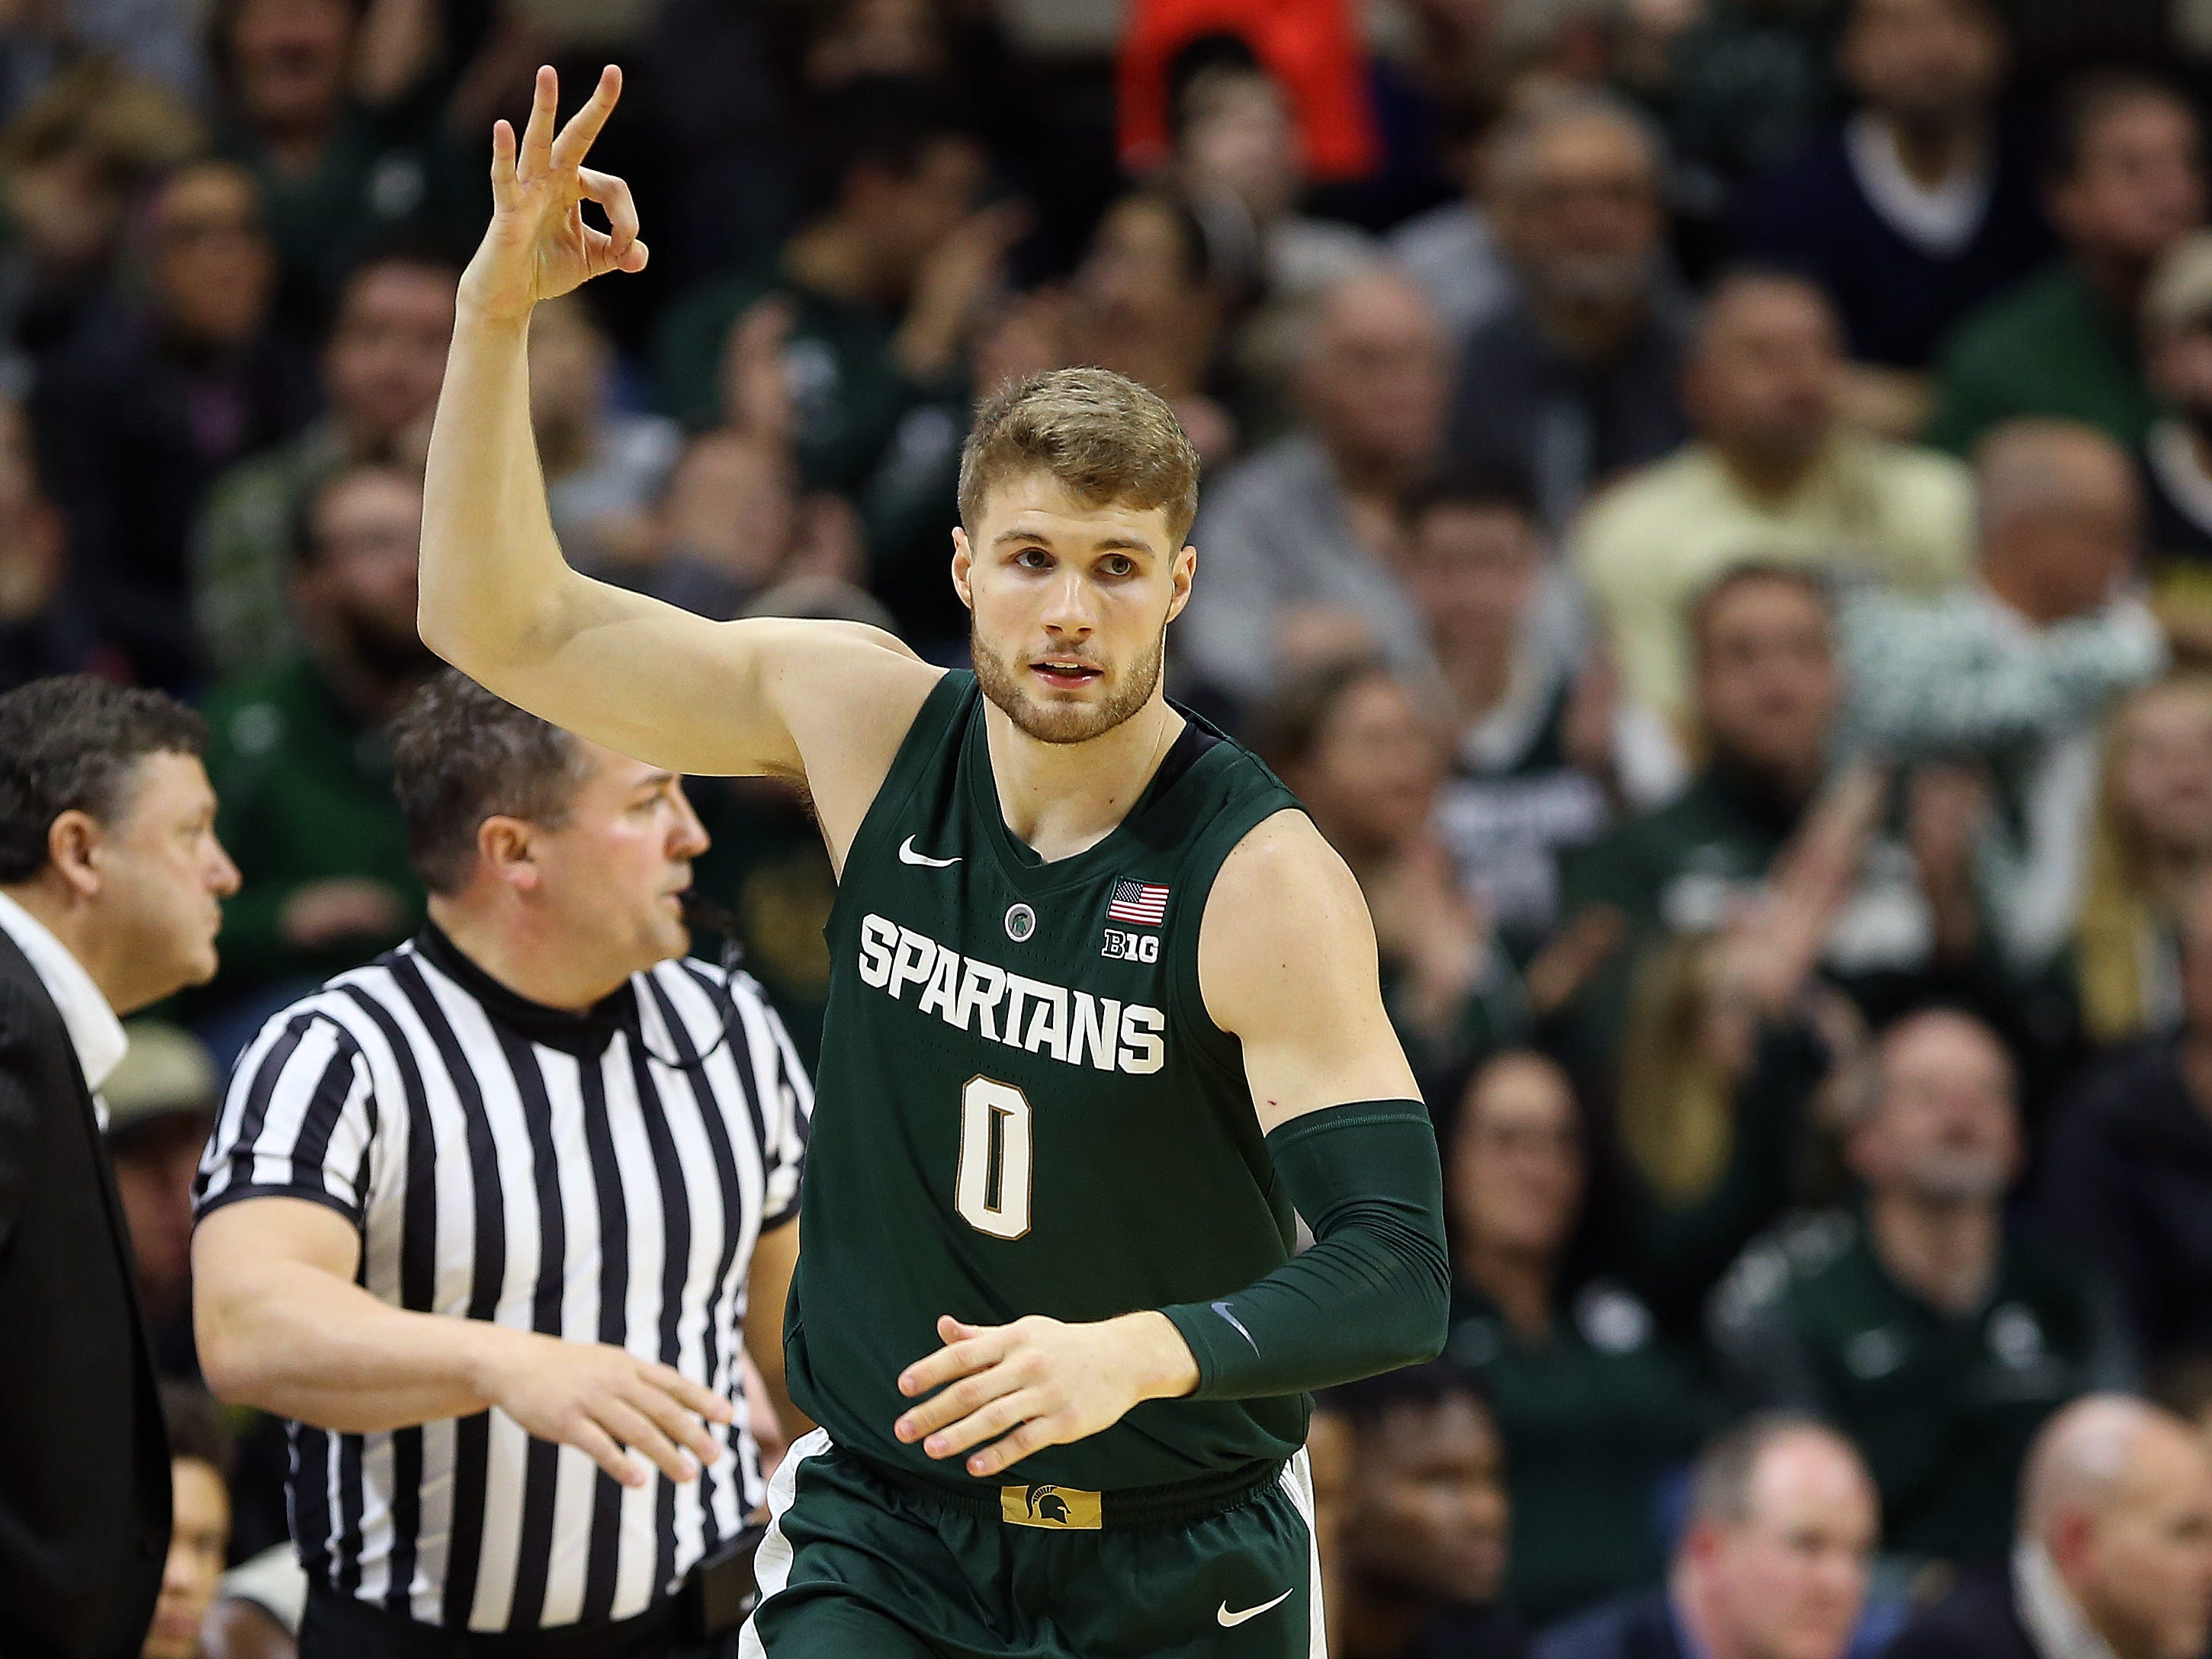 Michigan State Spartans forward Kyle Ahrens (0) reacts during the first half of a game against the Oakland Golden Grizzlies at the Breslin Center.